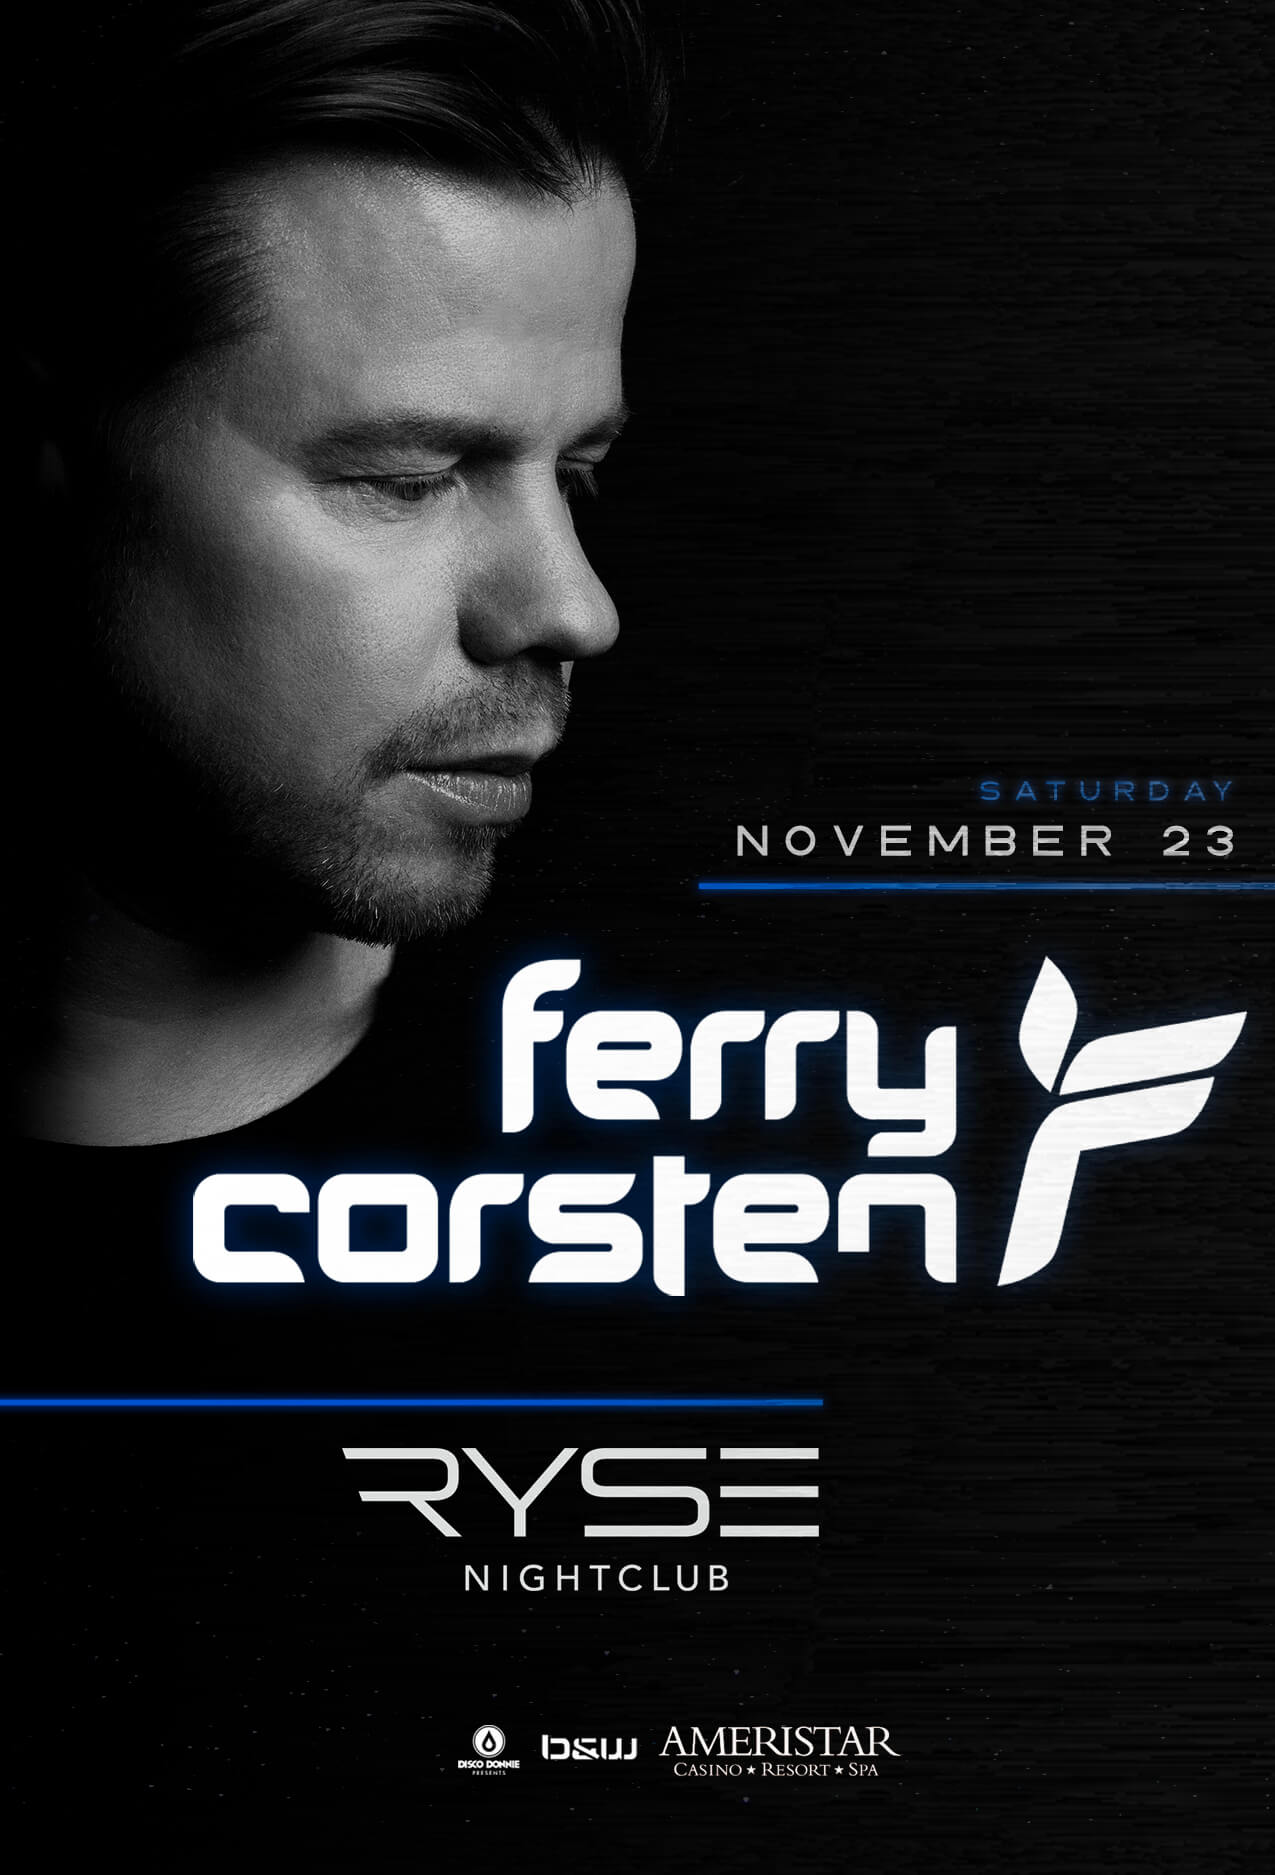 Ferry Corsten in St Charles